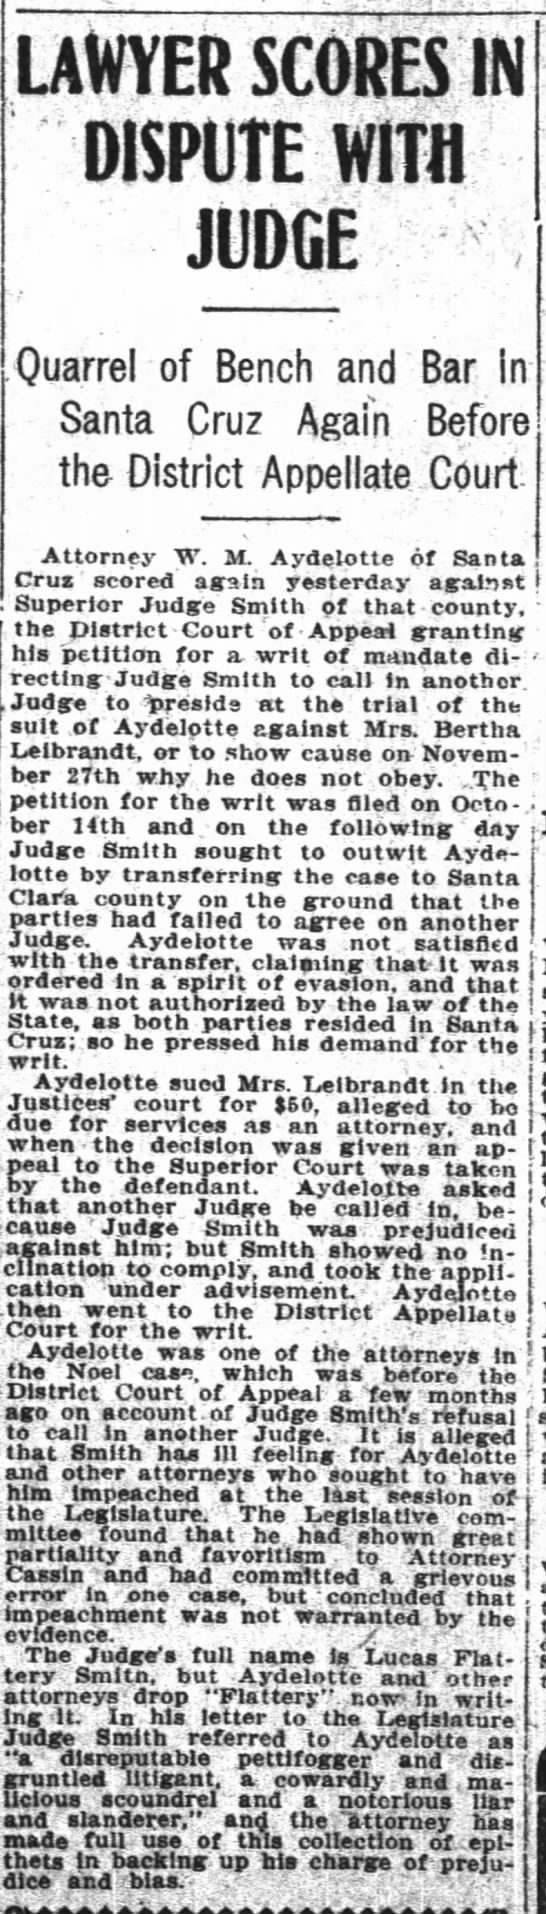 Lawyer Scores Nov. 10 1905